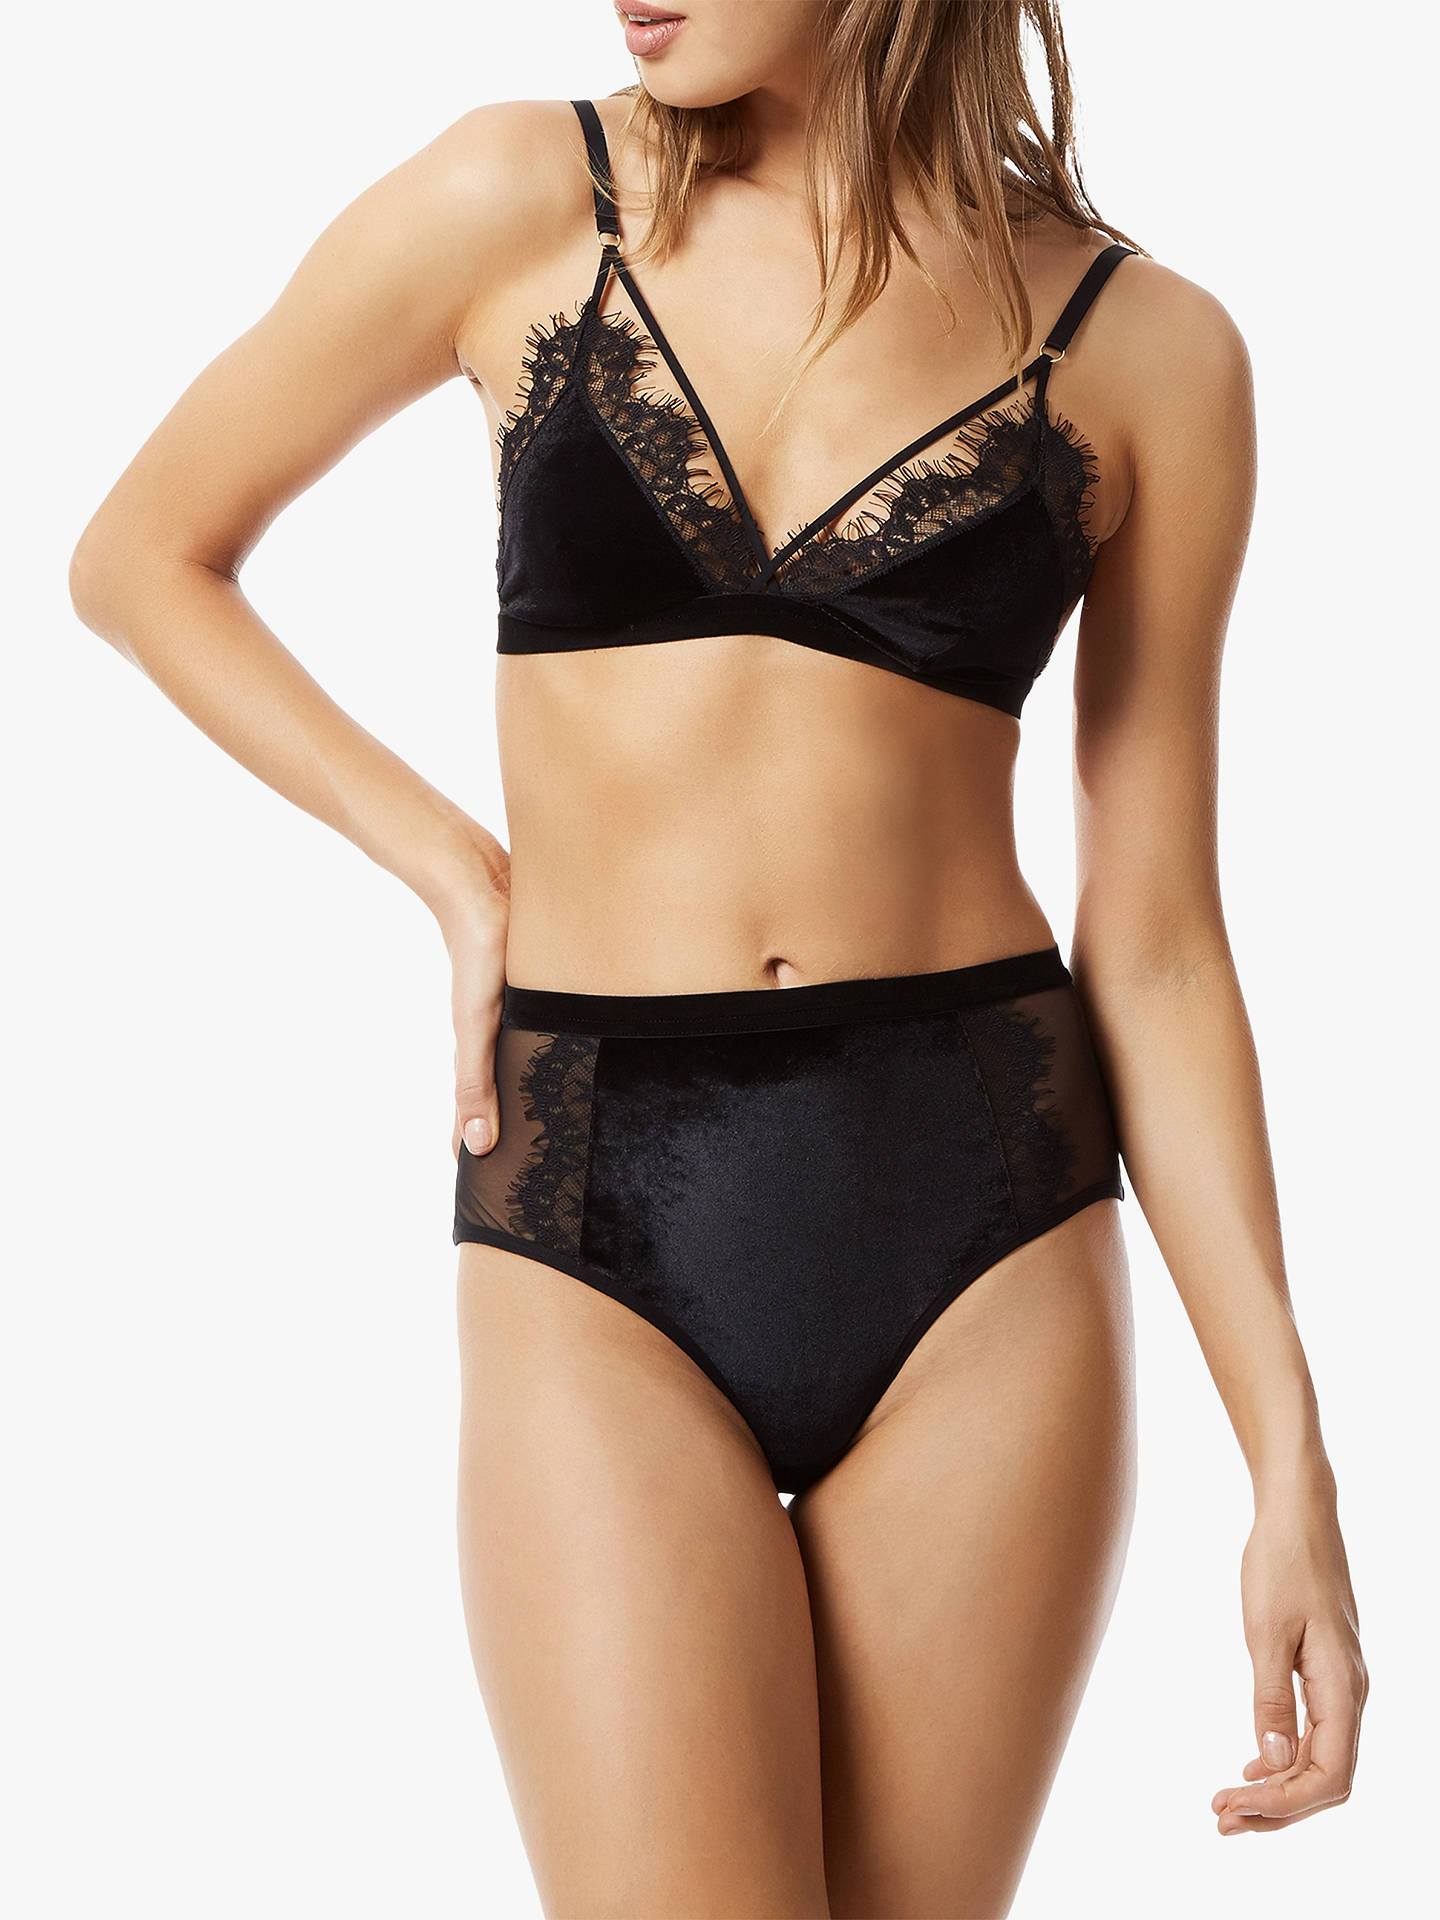 BuyBluebella Nina High Waist Briefs, Black, 8 Online at johnlewis.com